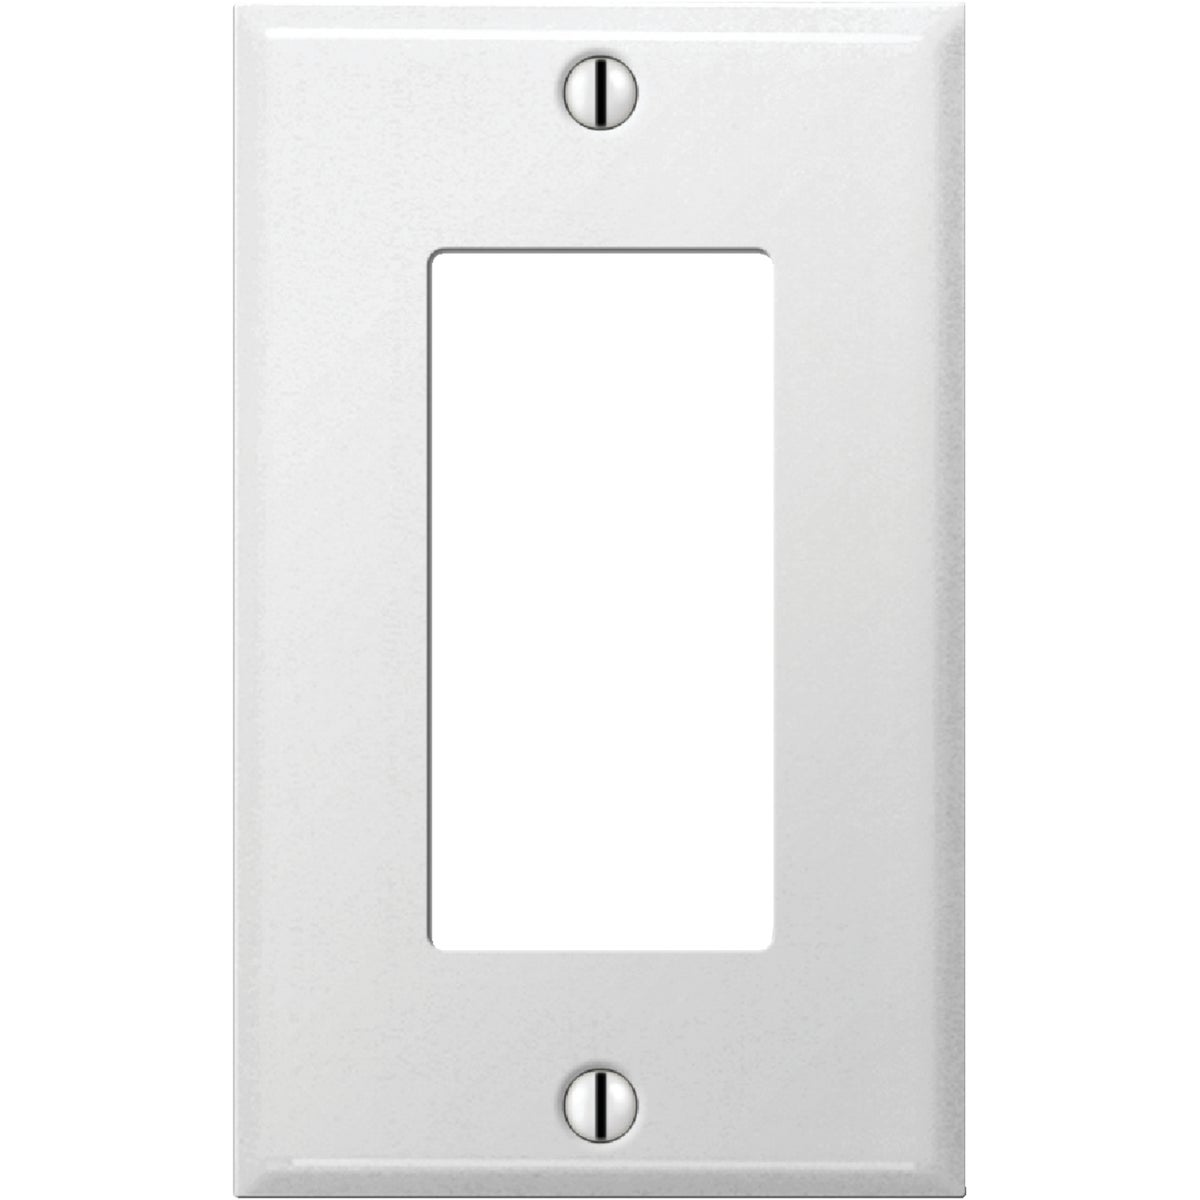 WHT ROCKER WALL PLATE - 8WS117 by Jackson Deerfield Mf